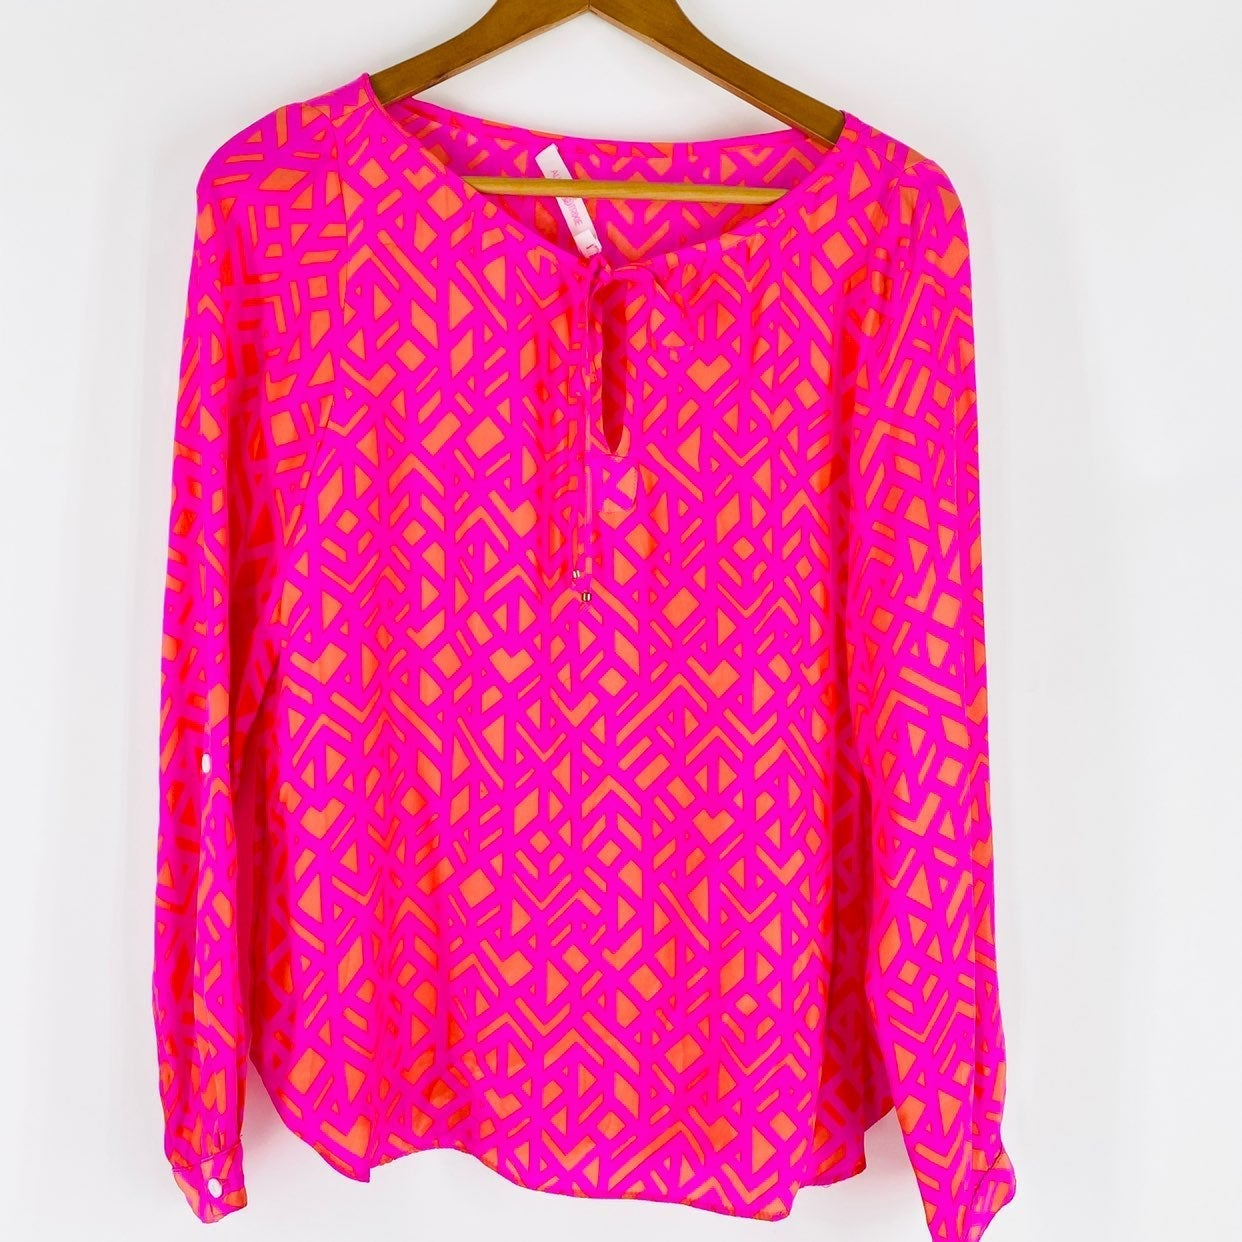 Alice & Trixie 100% Silk Blouse Top Pink